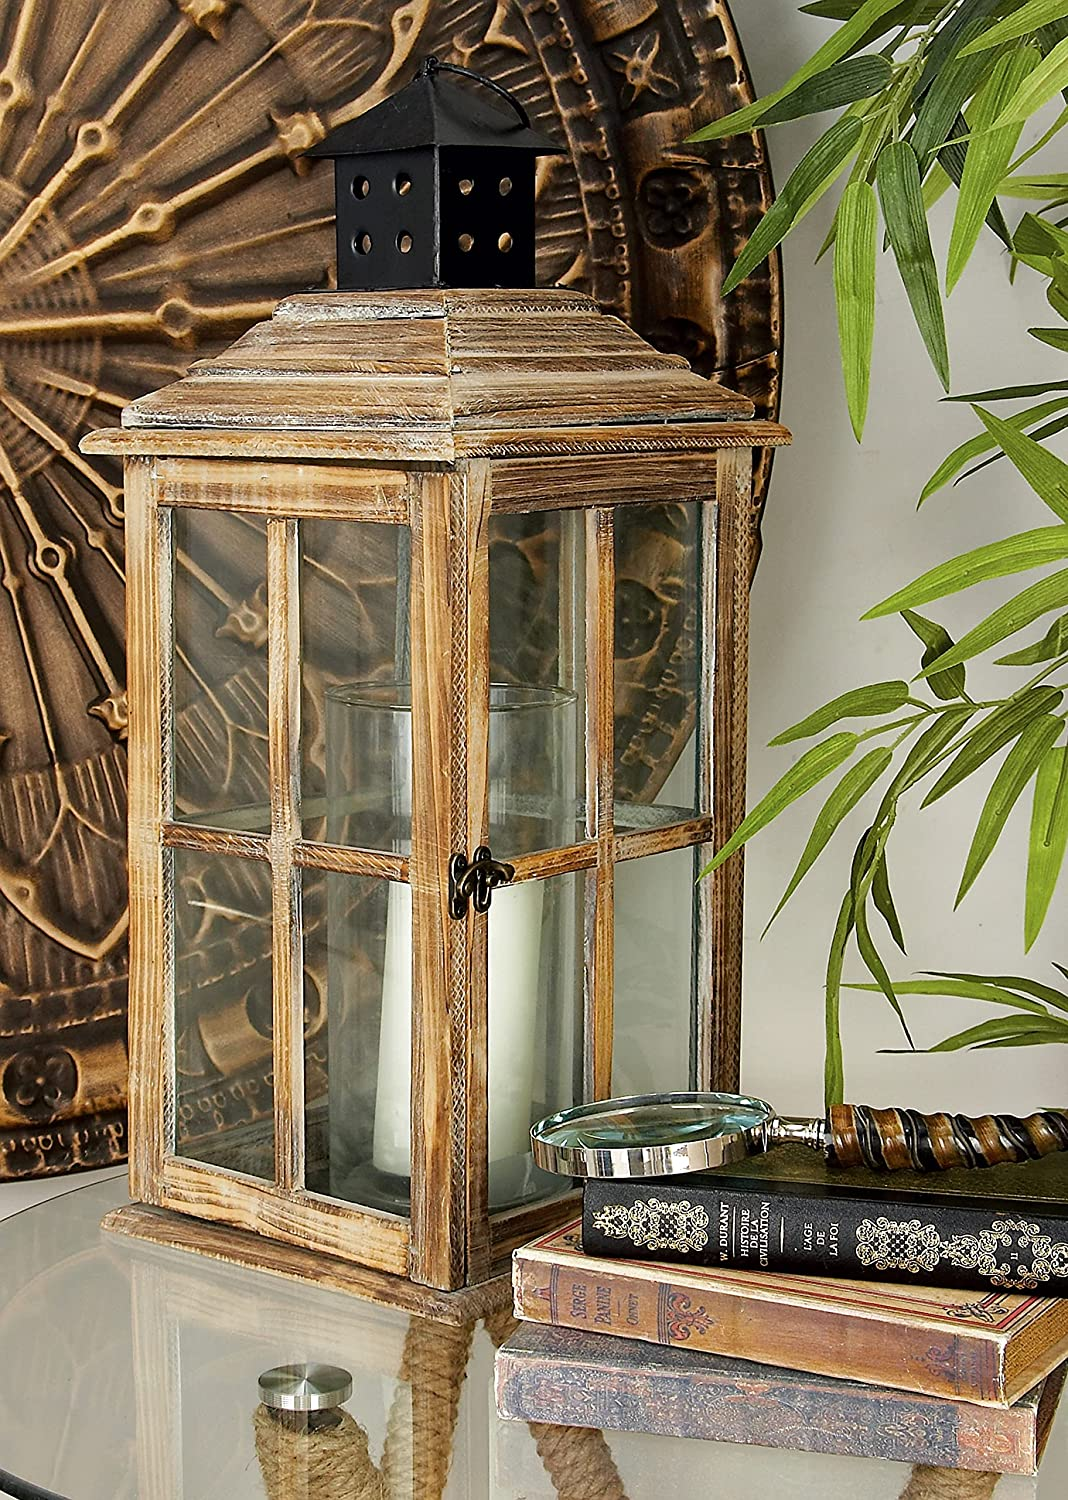 Deco 79 Wood supreme Candle Long Beach Mall Lantern 9-Inch 23 by